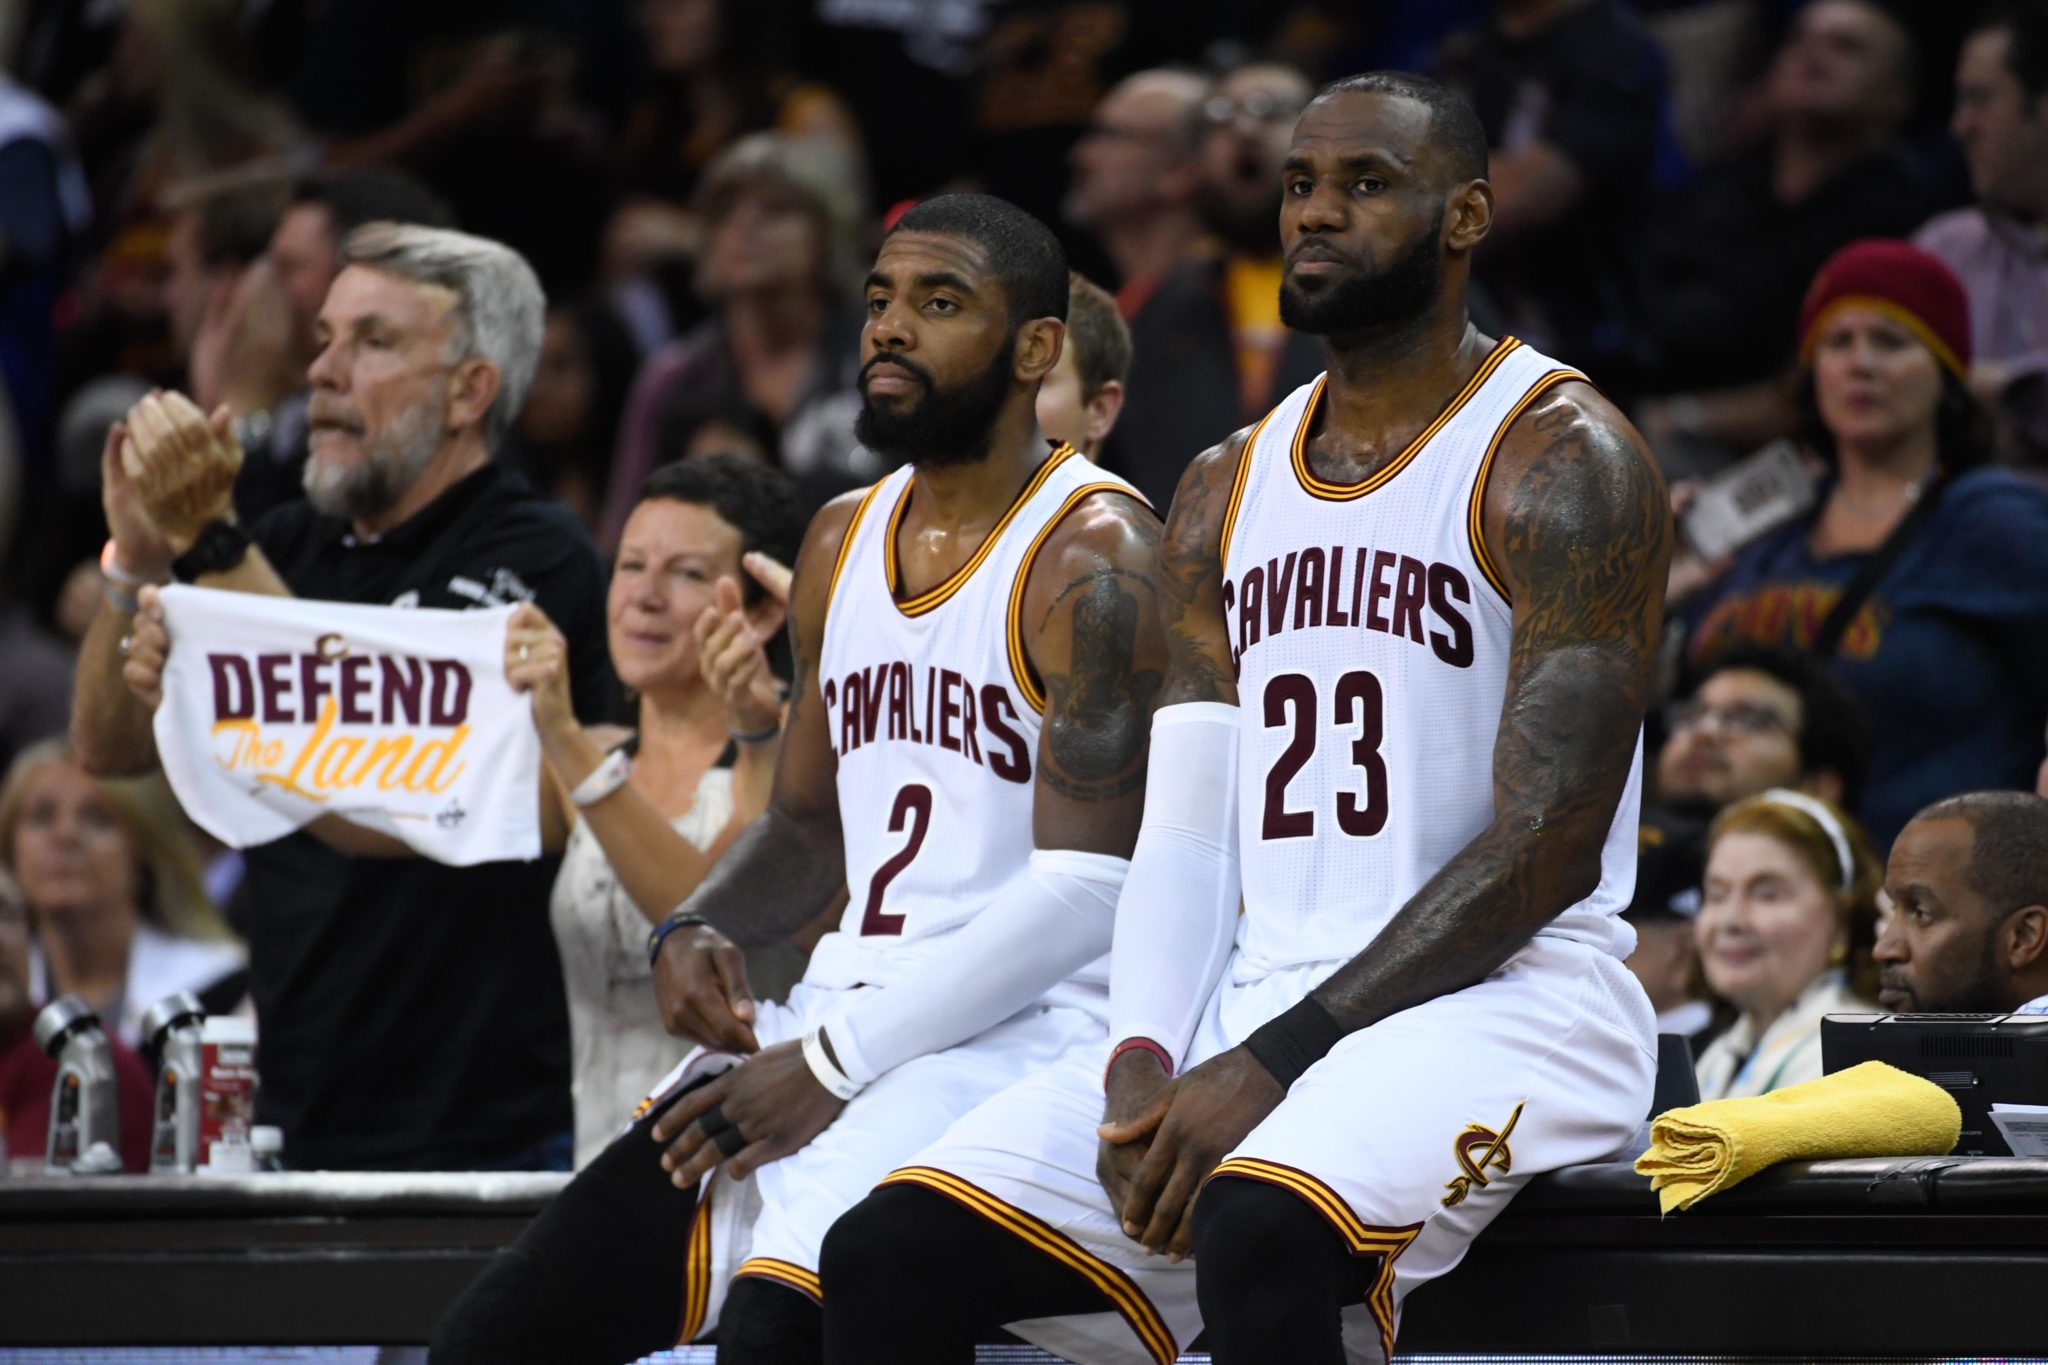 Cleveland OH USA Cleveland Cavaliers guard Kyrie Irving and forward Le Bron James during the second quarter in game four of the 2017 NBA Finals against the Golden State Warriors at Quicken Loans Arena. Mandatory Credit Kyle Terad